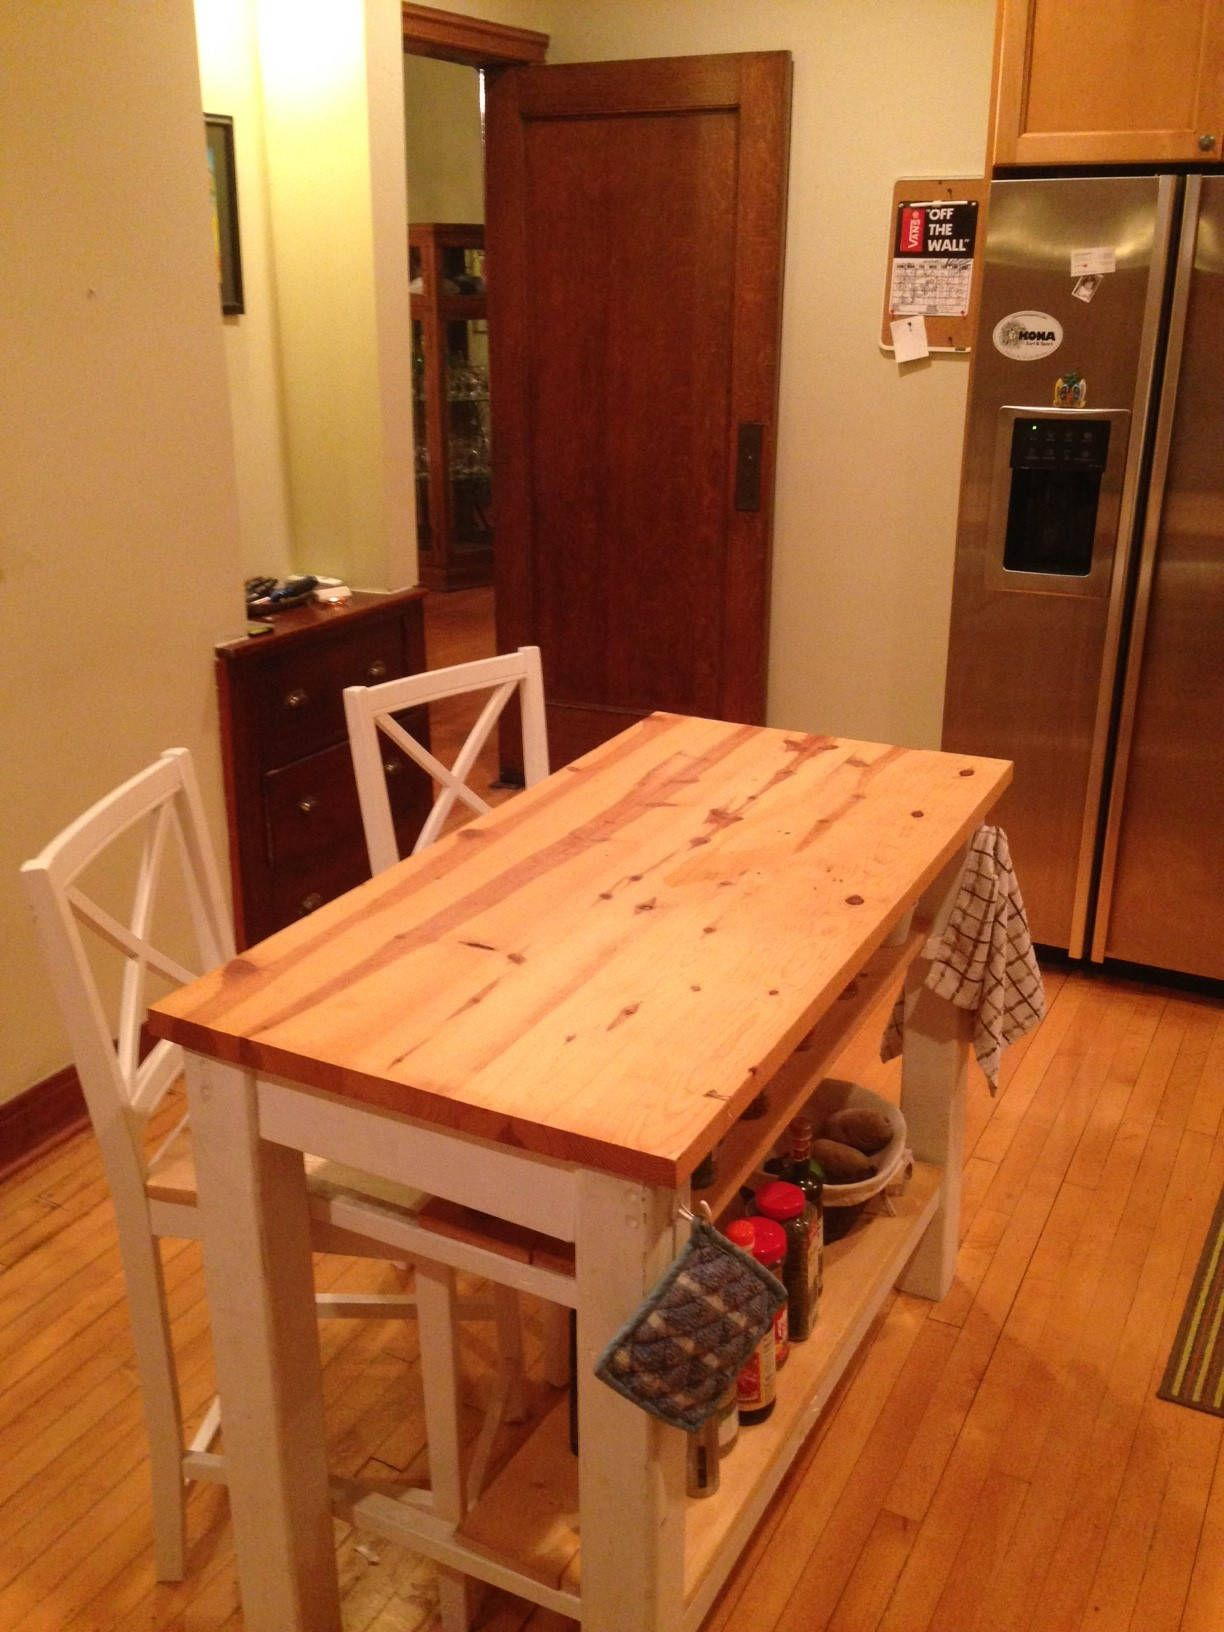 Farmhouse Kitchen Island Butcher block style table with seating